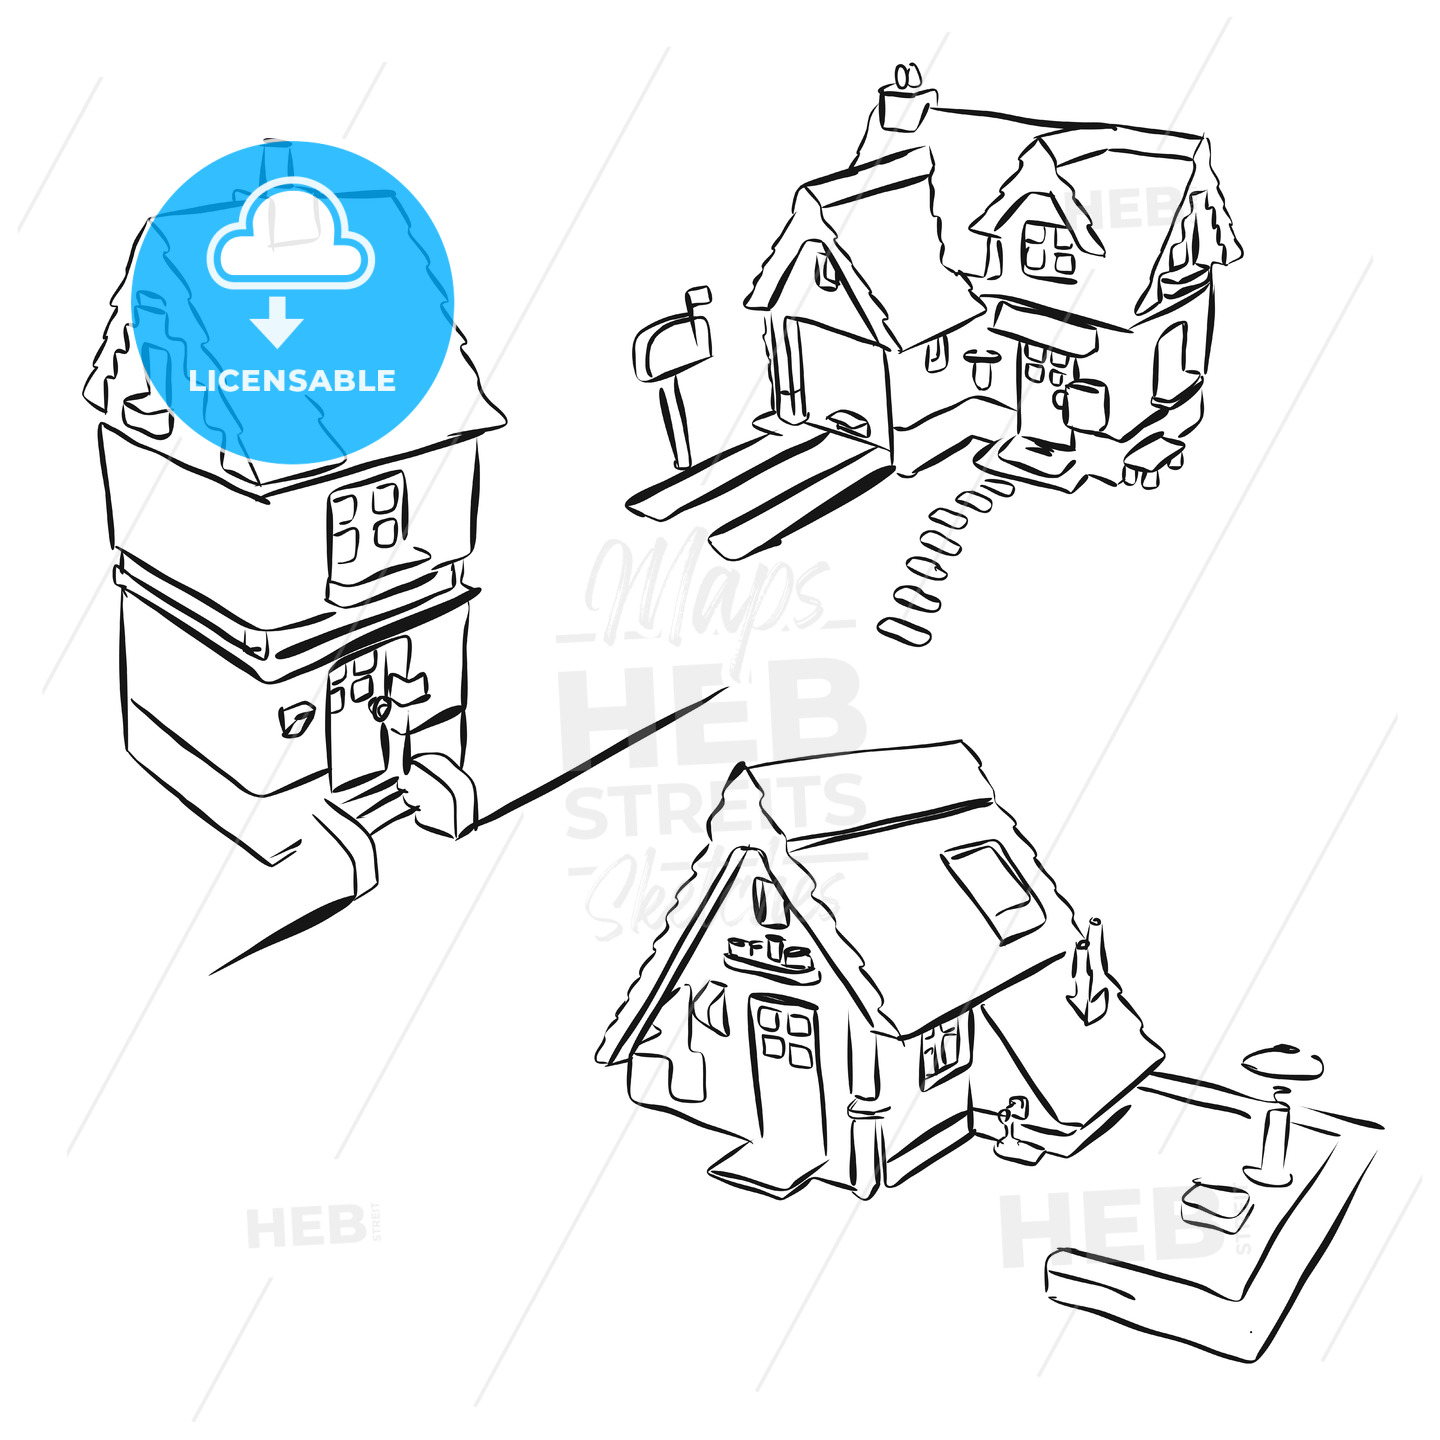 Three Houses Sketch Miniature Doodles - Hebstreits